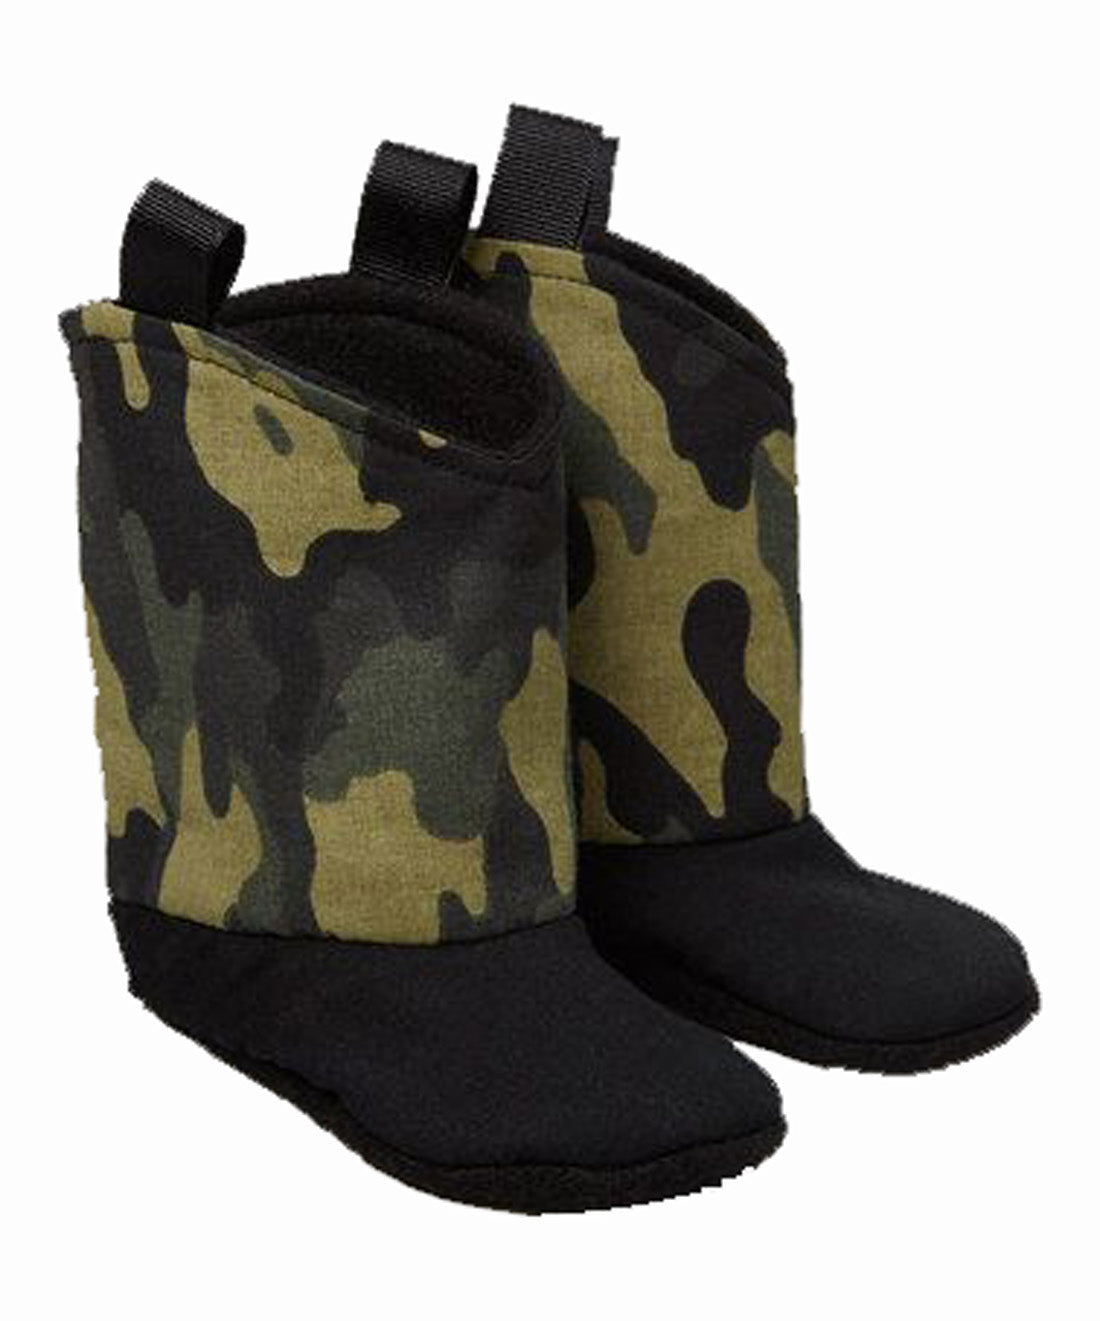 Camo Green baby bootie for that little hunter in your life